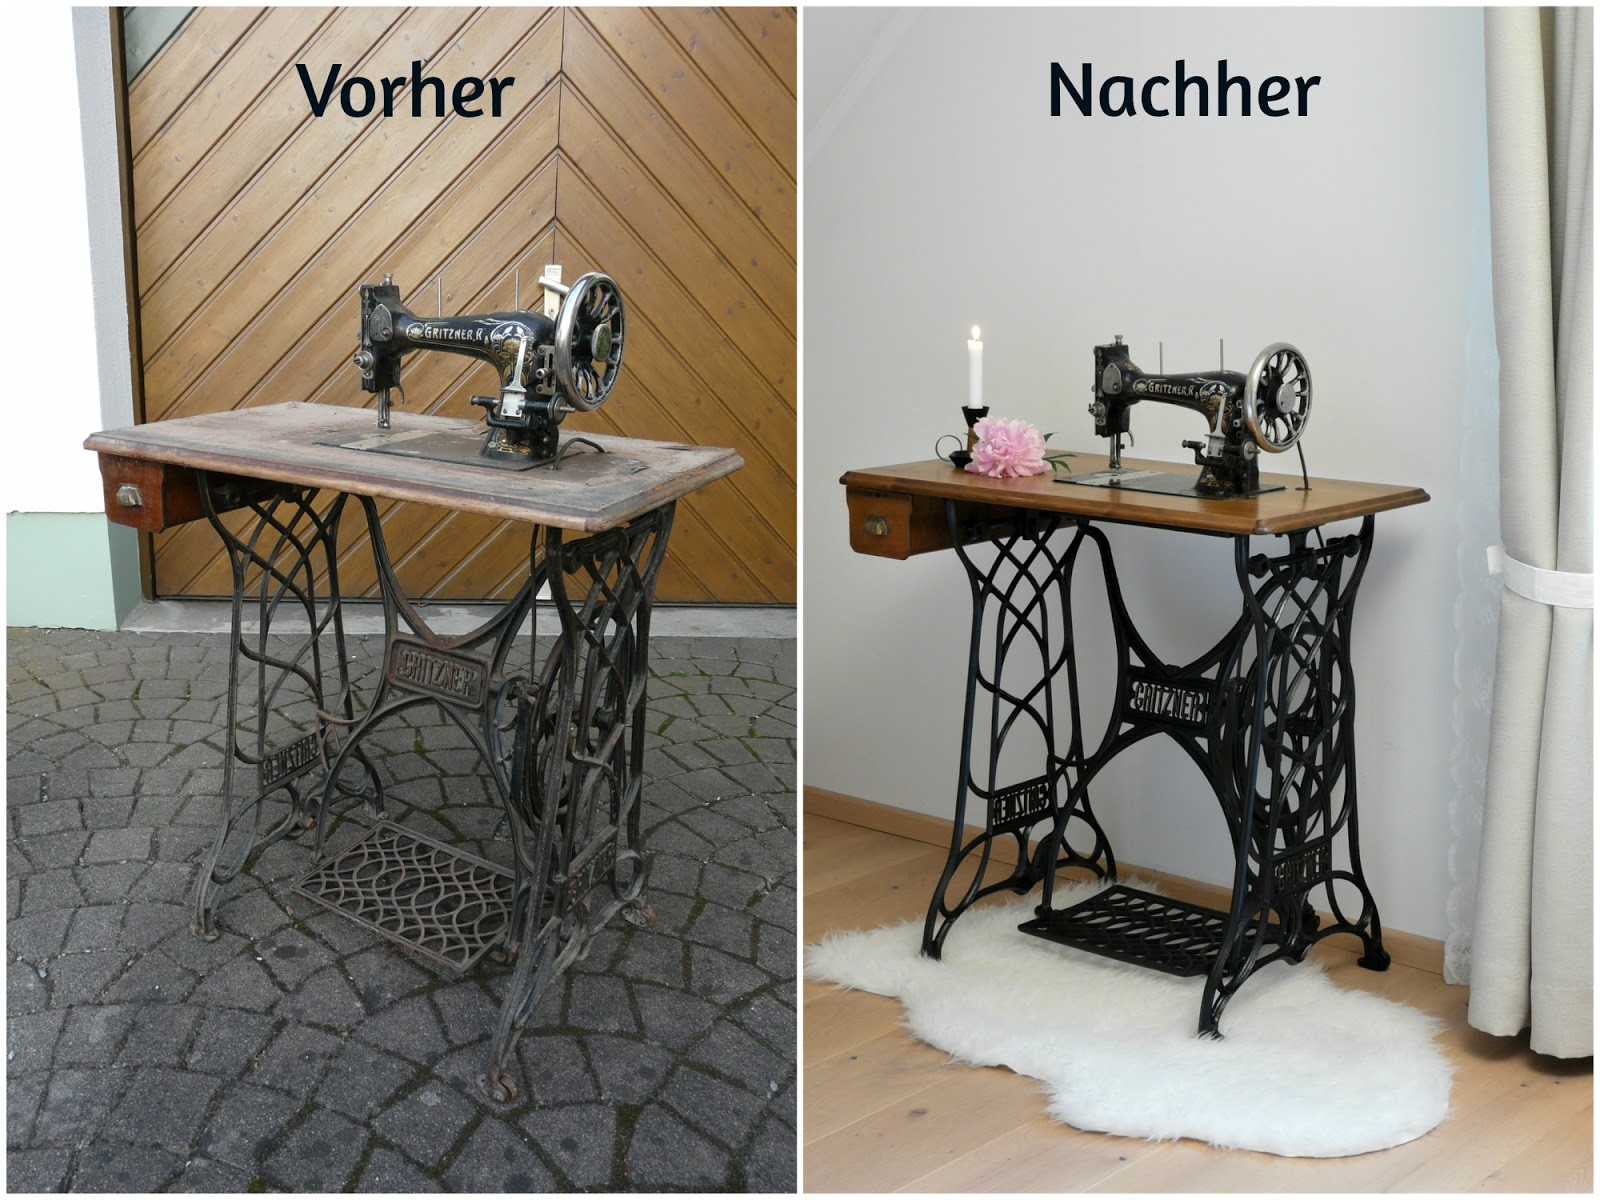 dekoelement alte n hmaschine gritzner r bekommt neues. Black Bedroom Furniture Sets. Home Design Ideas